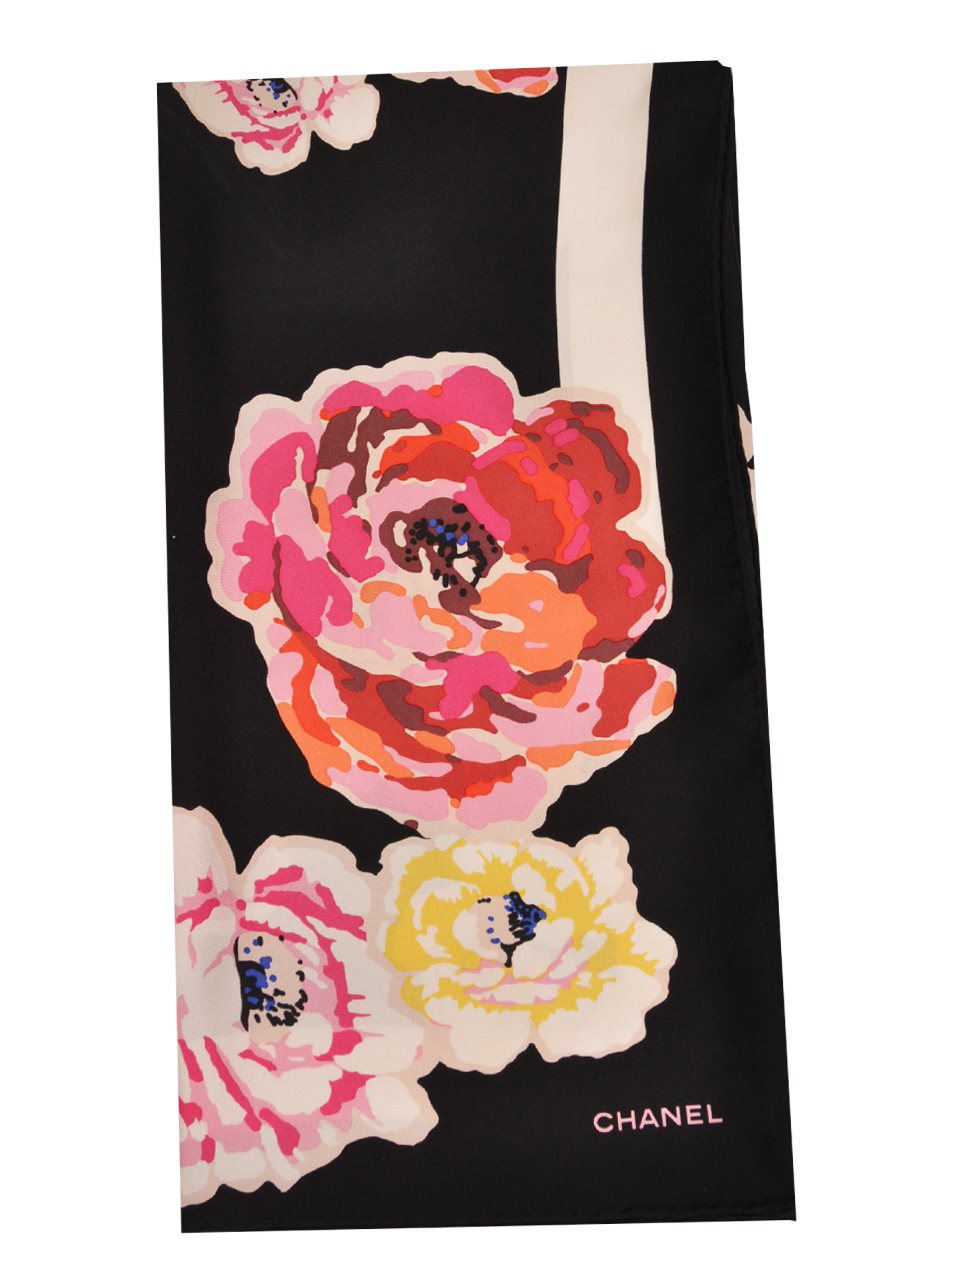 Chanel - Floral Print Silk Twill Scarf - Image 3 of 3